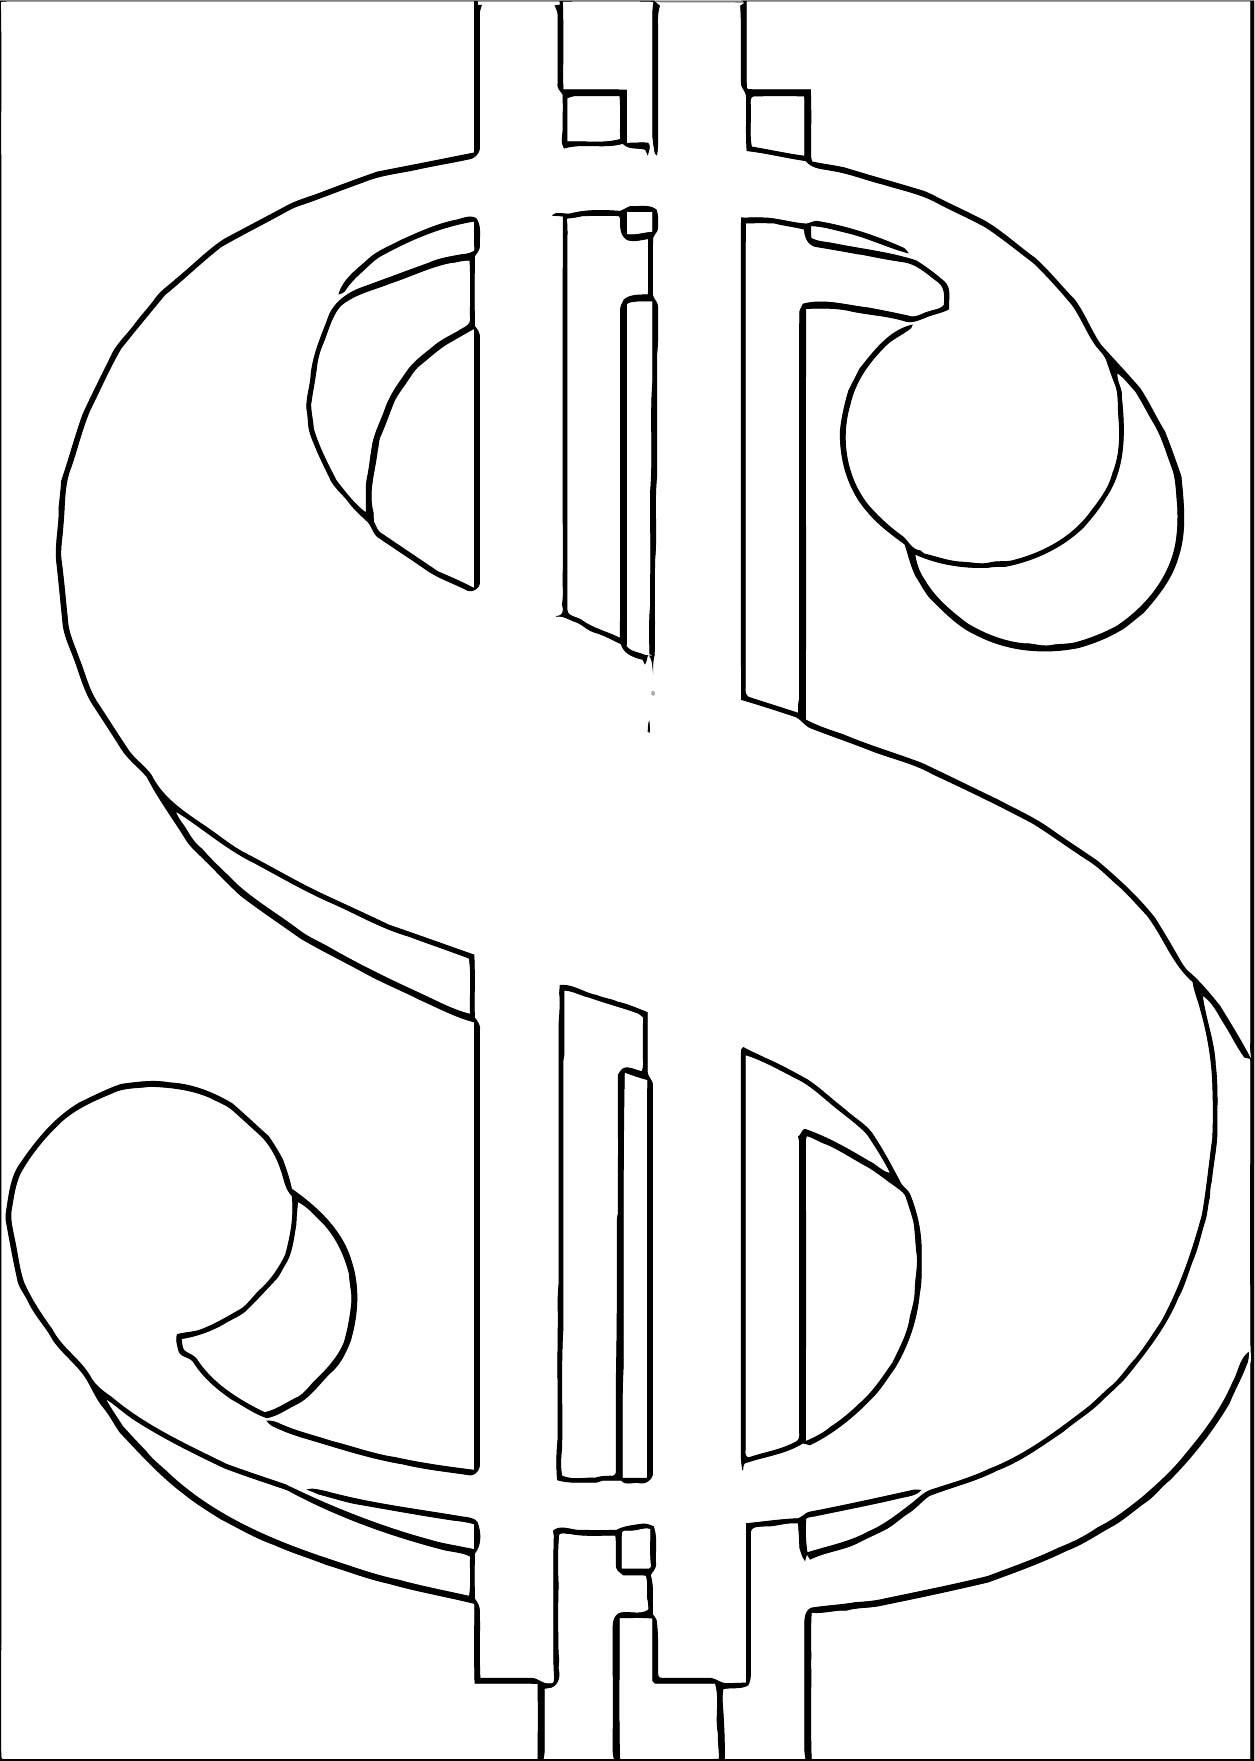 Money Symbol Coloring Page